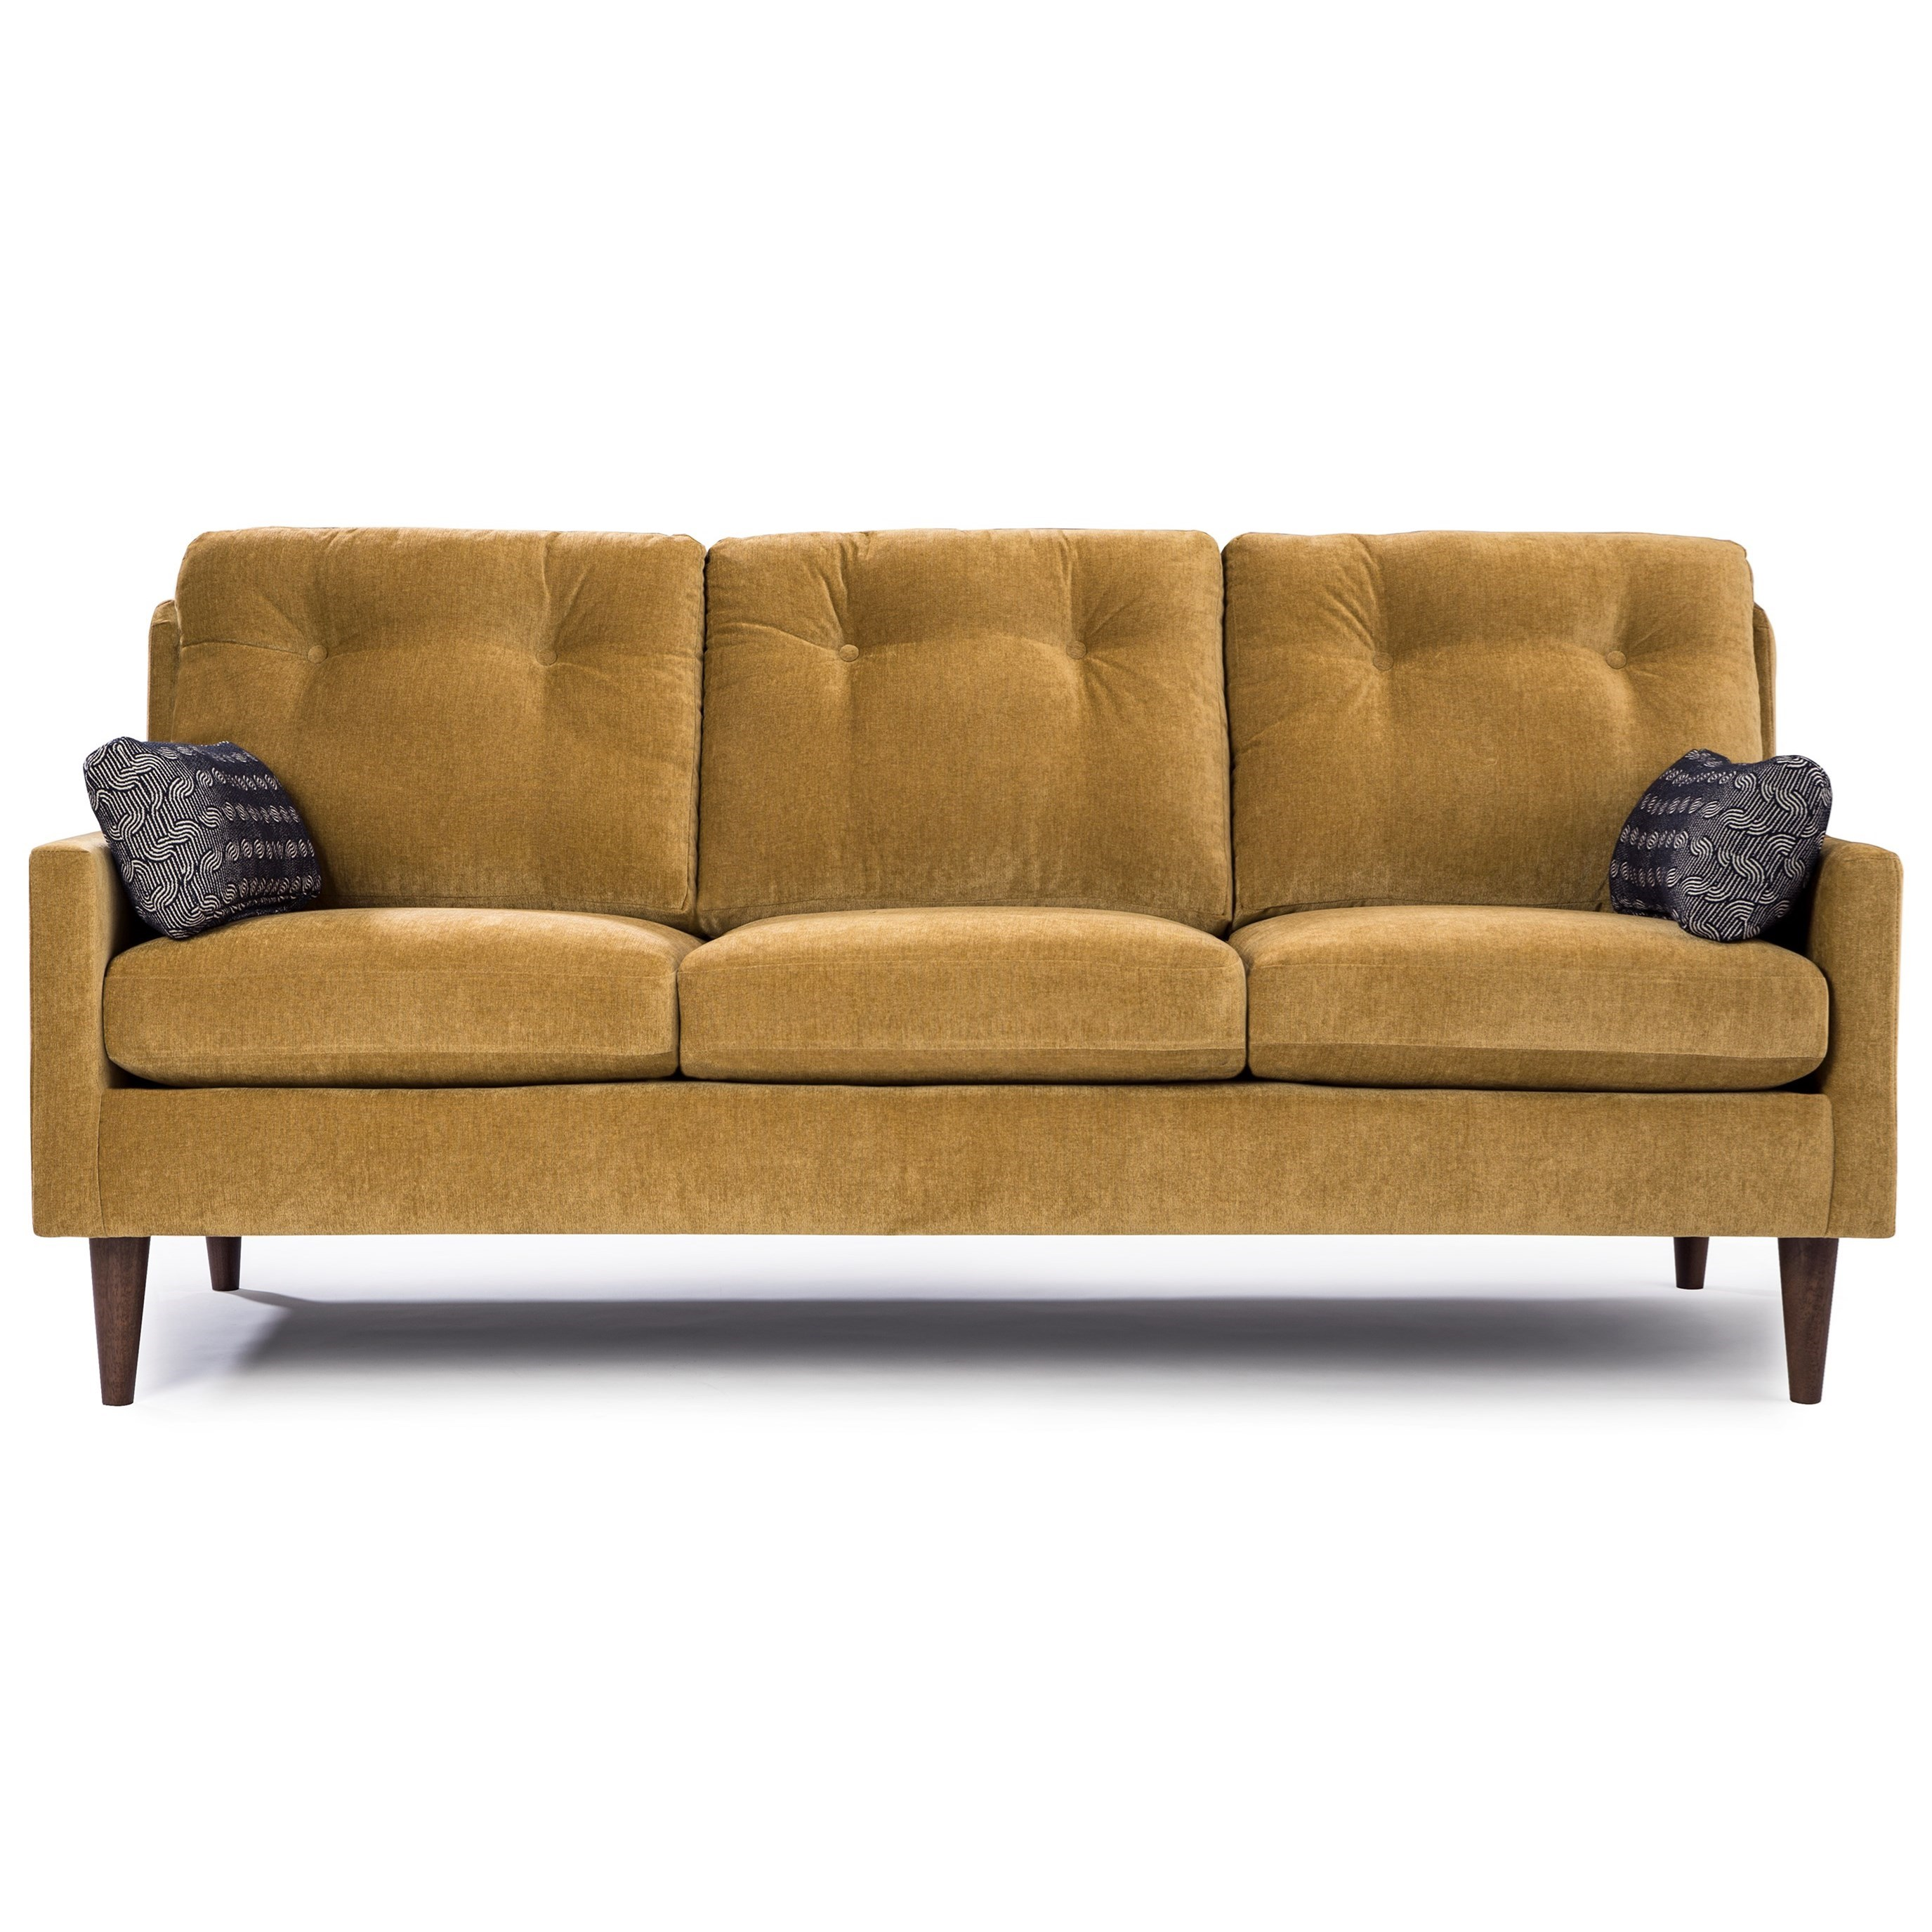 Trevin Sofa by Best Home Furnishings at Best Home Furnishings